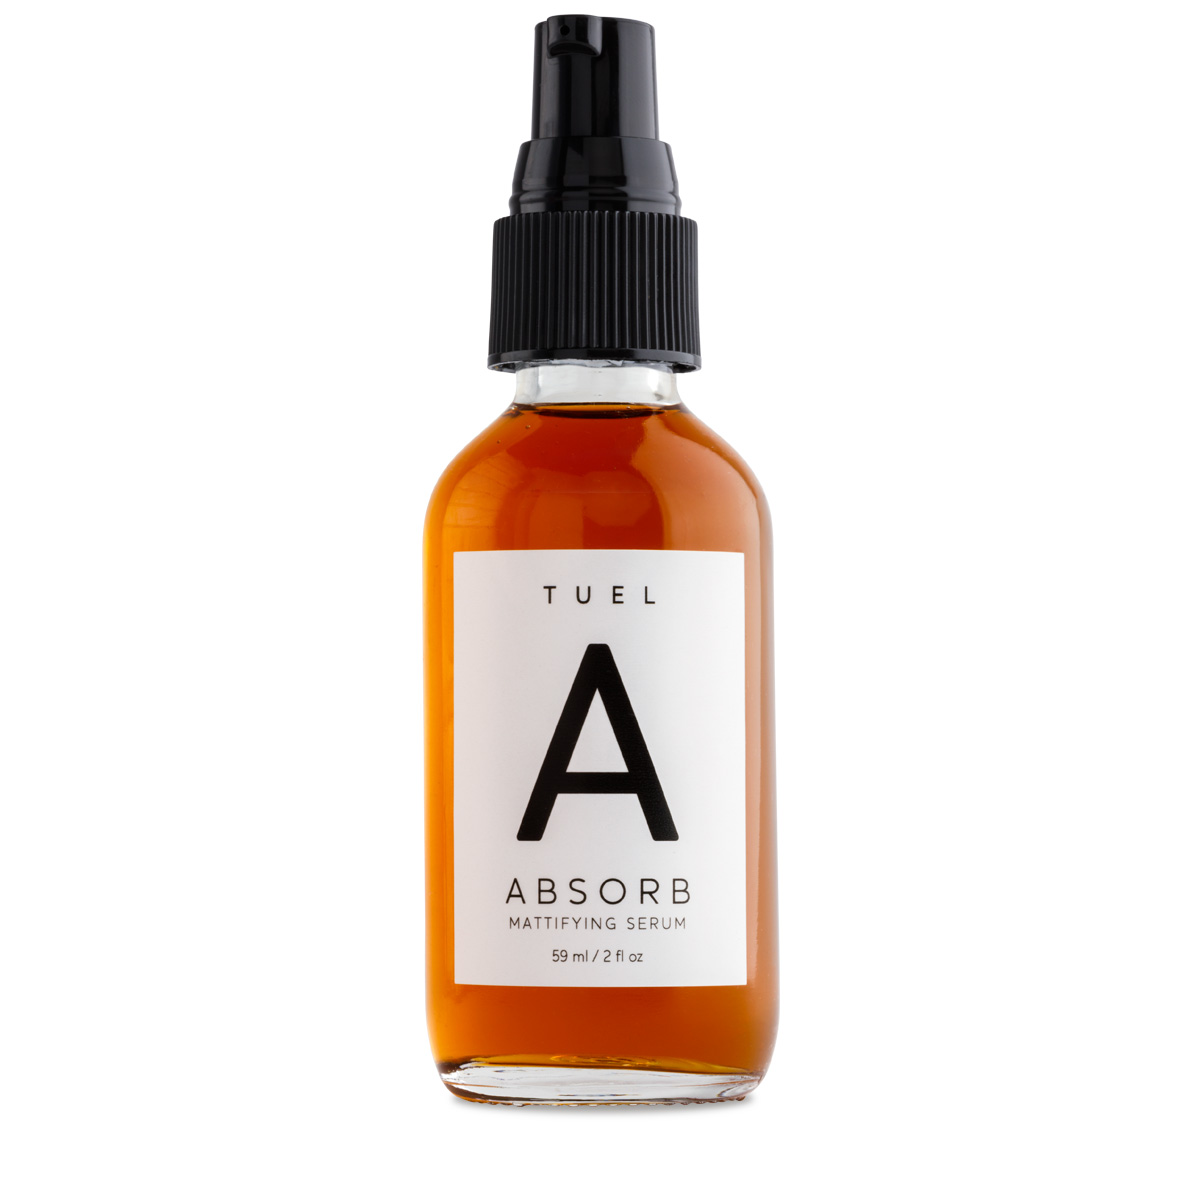 Absorb Mattifying Serum